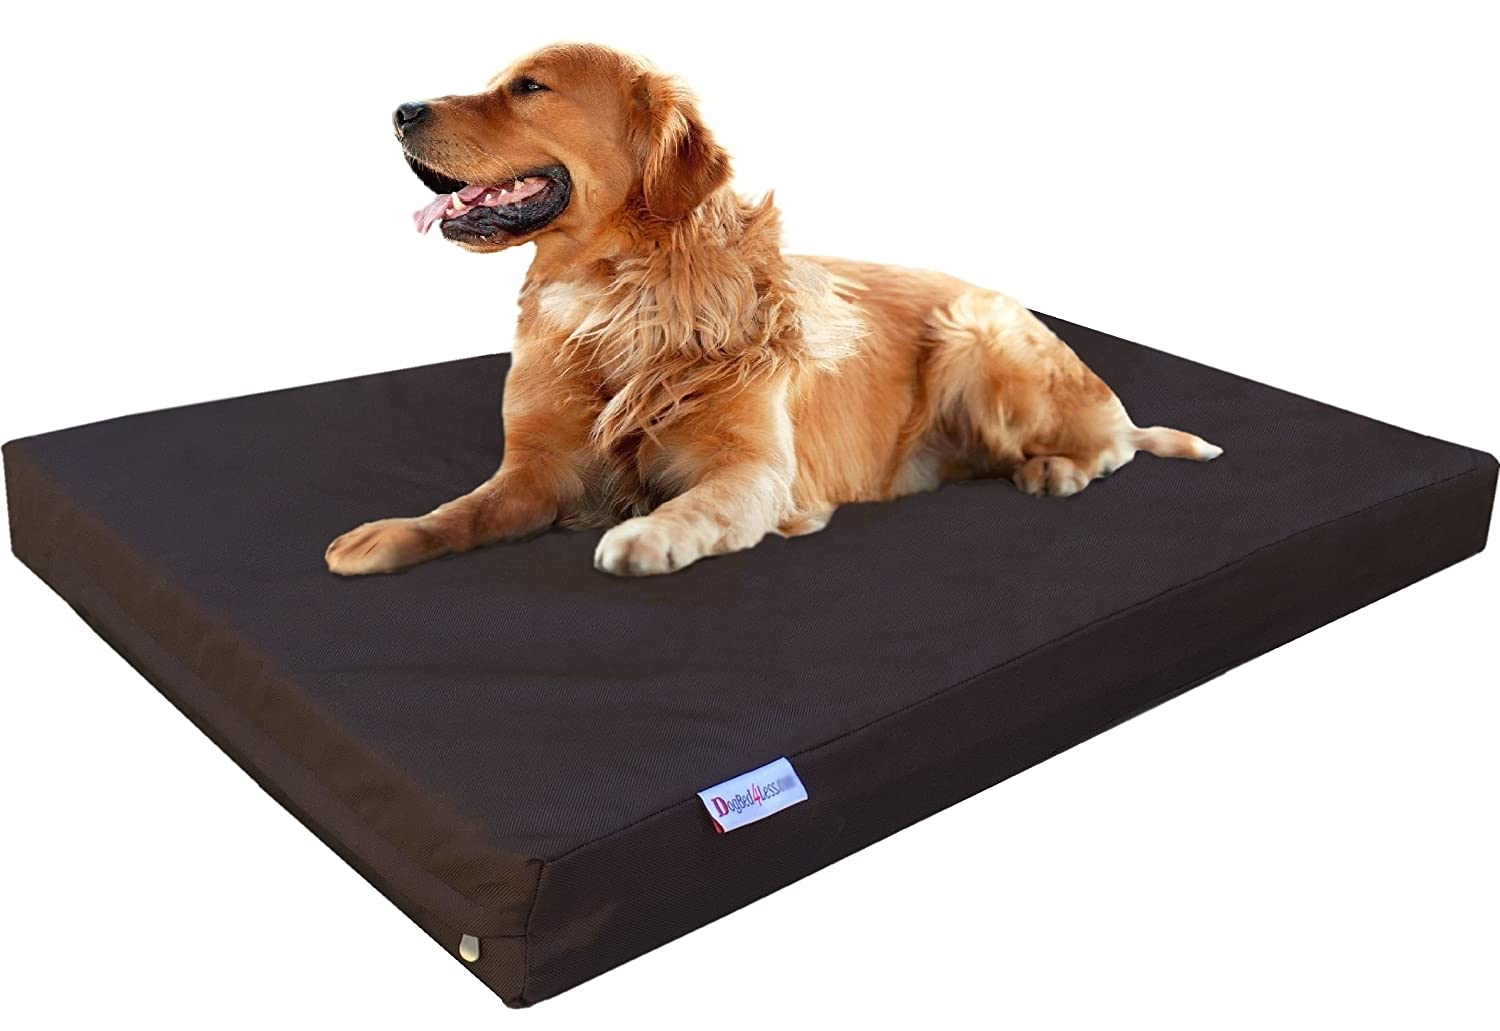 Ballistic in Brown Dogbed4less XL Orthopedic Gel Infused Cooling Memory Foam Dog Bed for Medium to Large Pet, Waterproof Liner and Heavy Duty 1680 Ballistic Seal Brown External Cover, 47X29X4 Inches